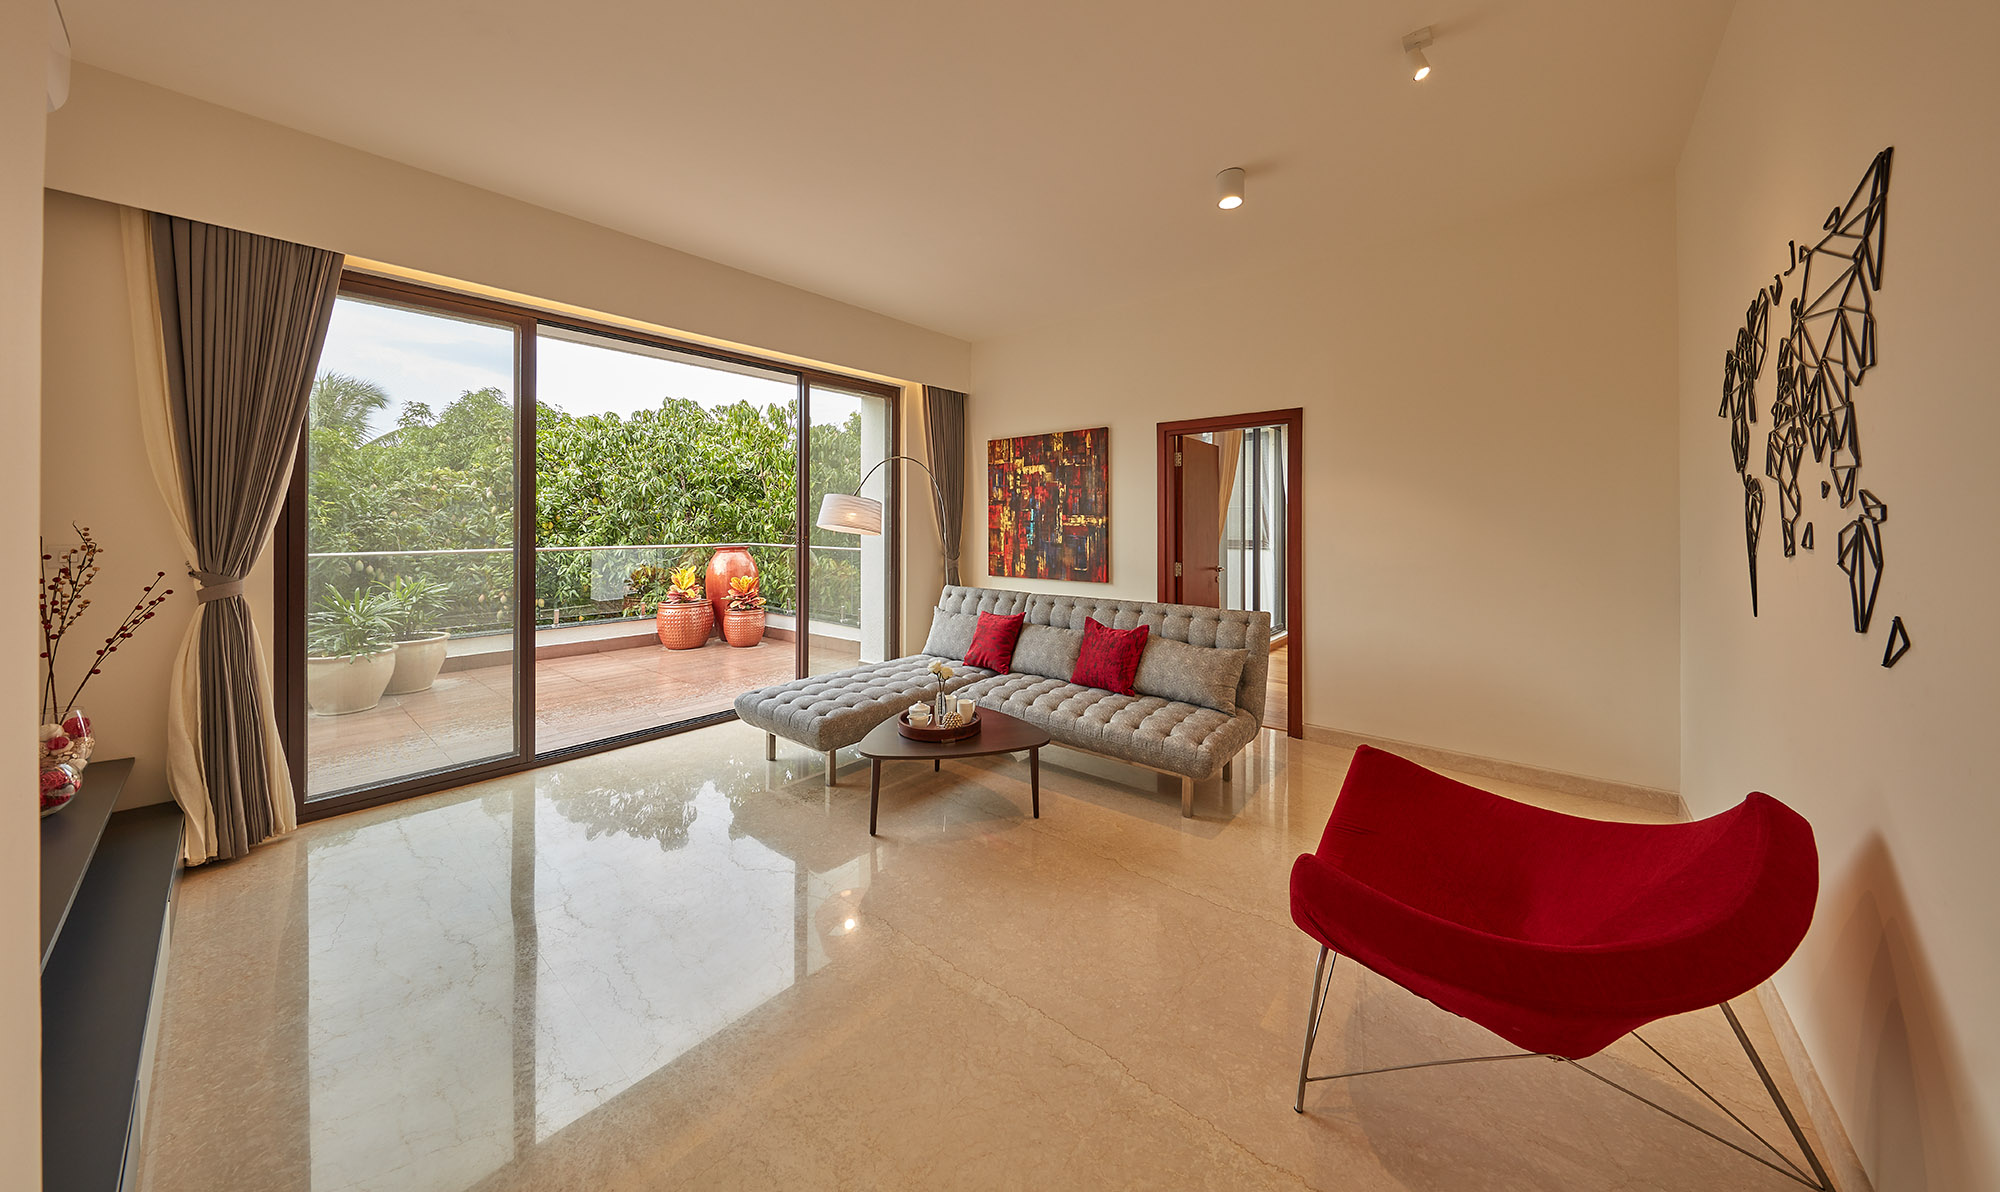 Under the Sun - Residential Development for Fortius Infra, by RSP Design Consultants 39